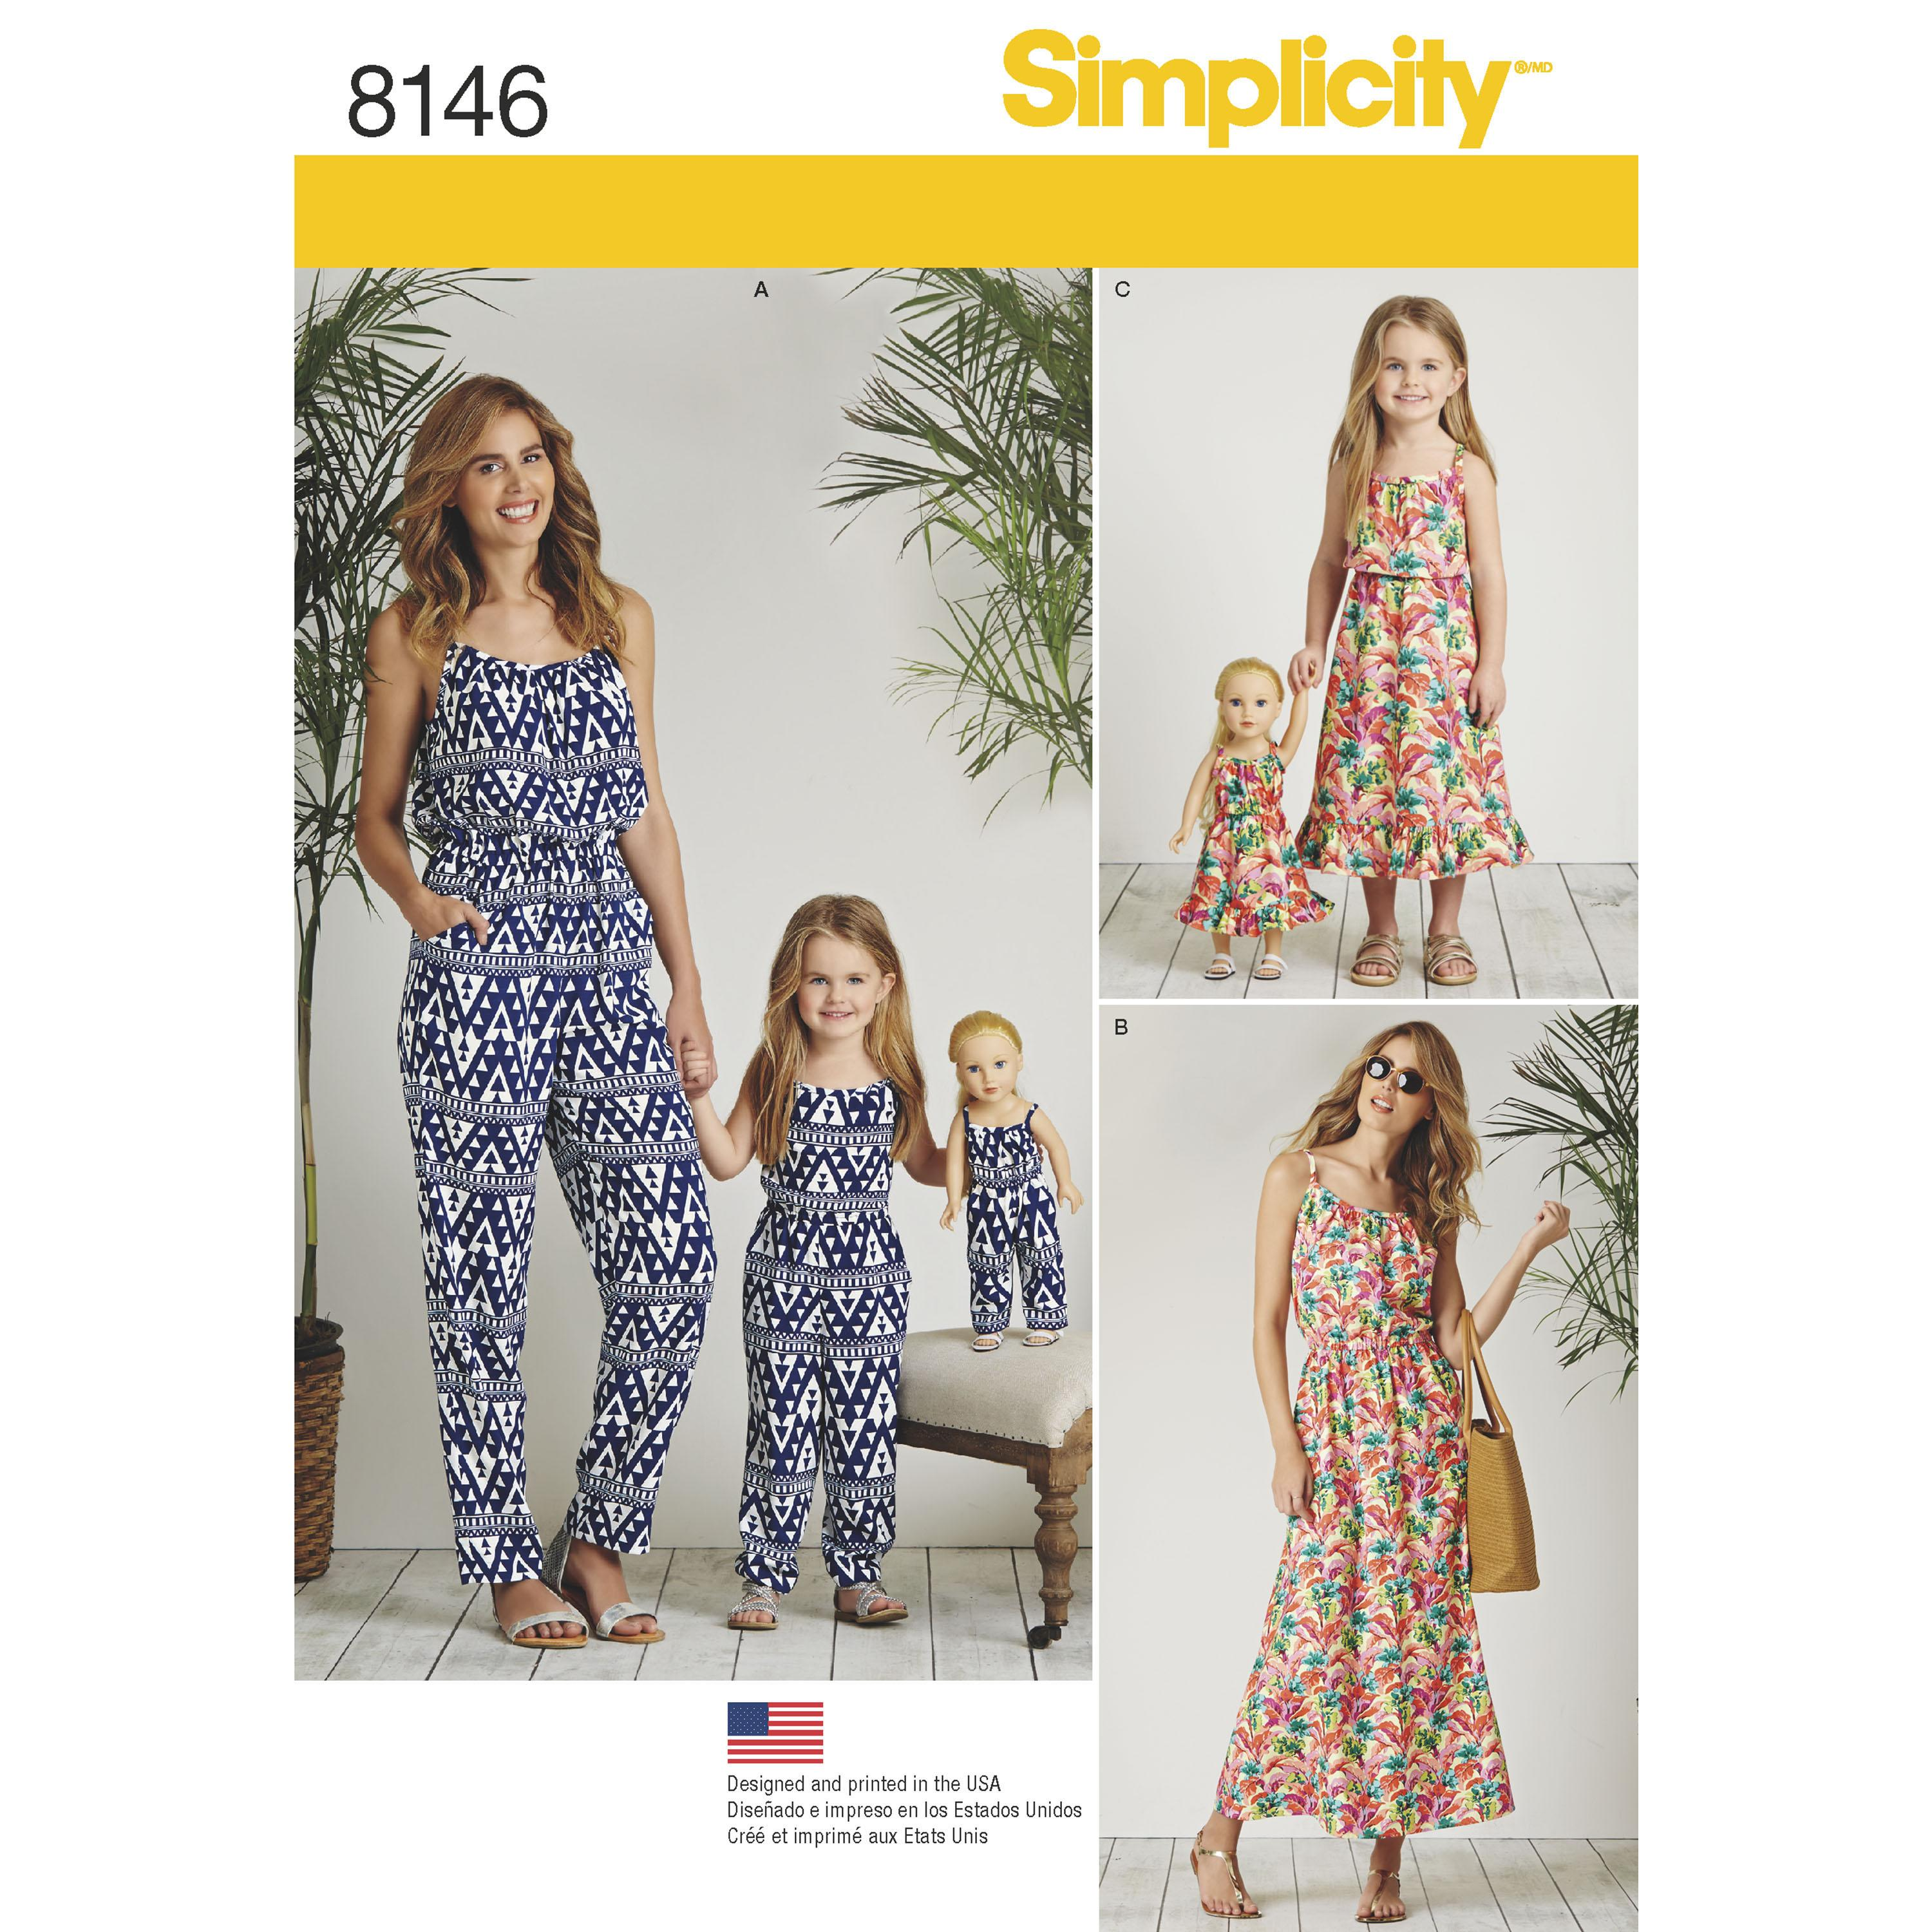 "Simplicity S8146 Matching outfits for Women's, Child and 18"" Doll"